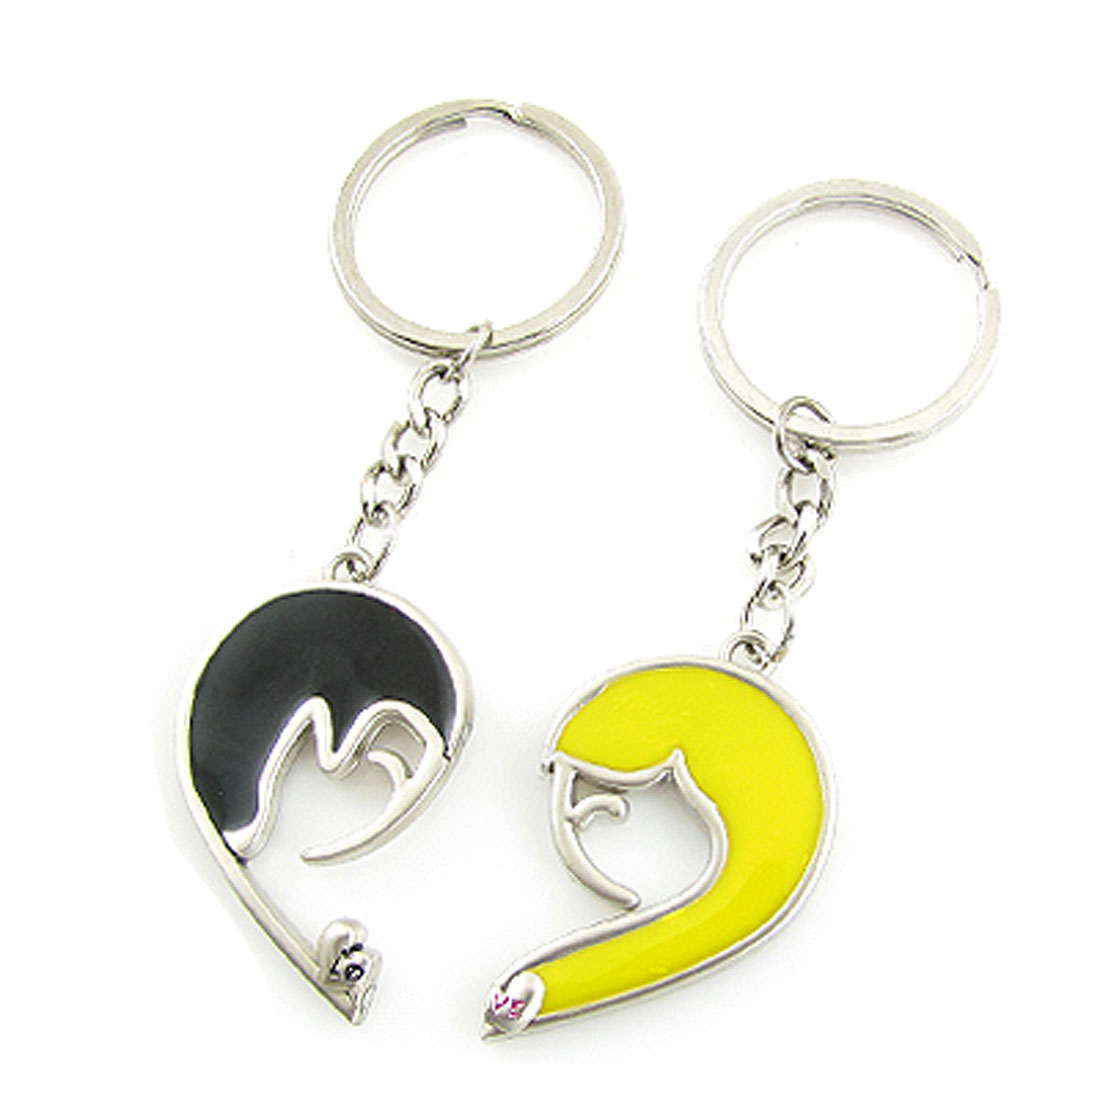 Couple Keychain Key Ring Human Shape Magnetised Pendant Black Yellow 2 Pcs